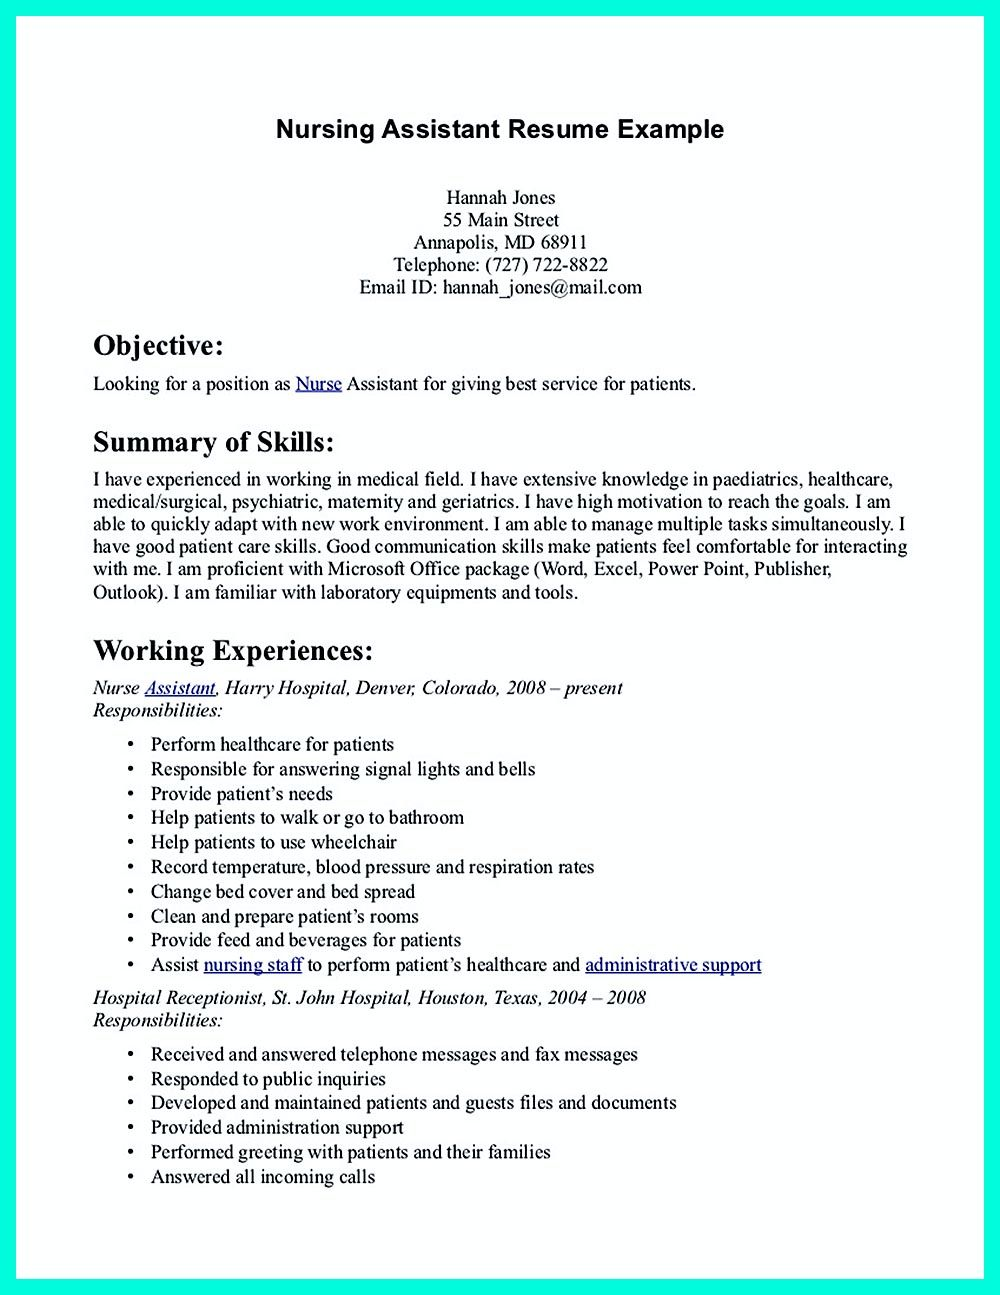 pin on resume sample template and format cna caregiver samples linkedin services sewing Resume Cna Caregiver Resume Samples